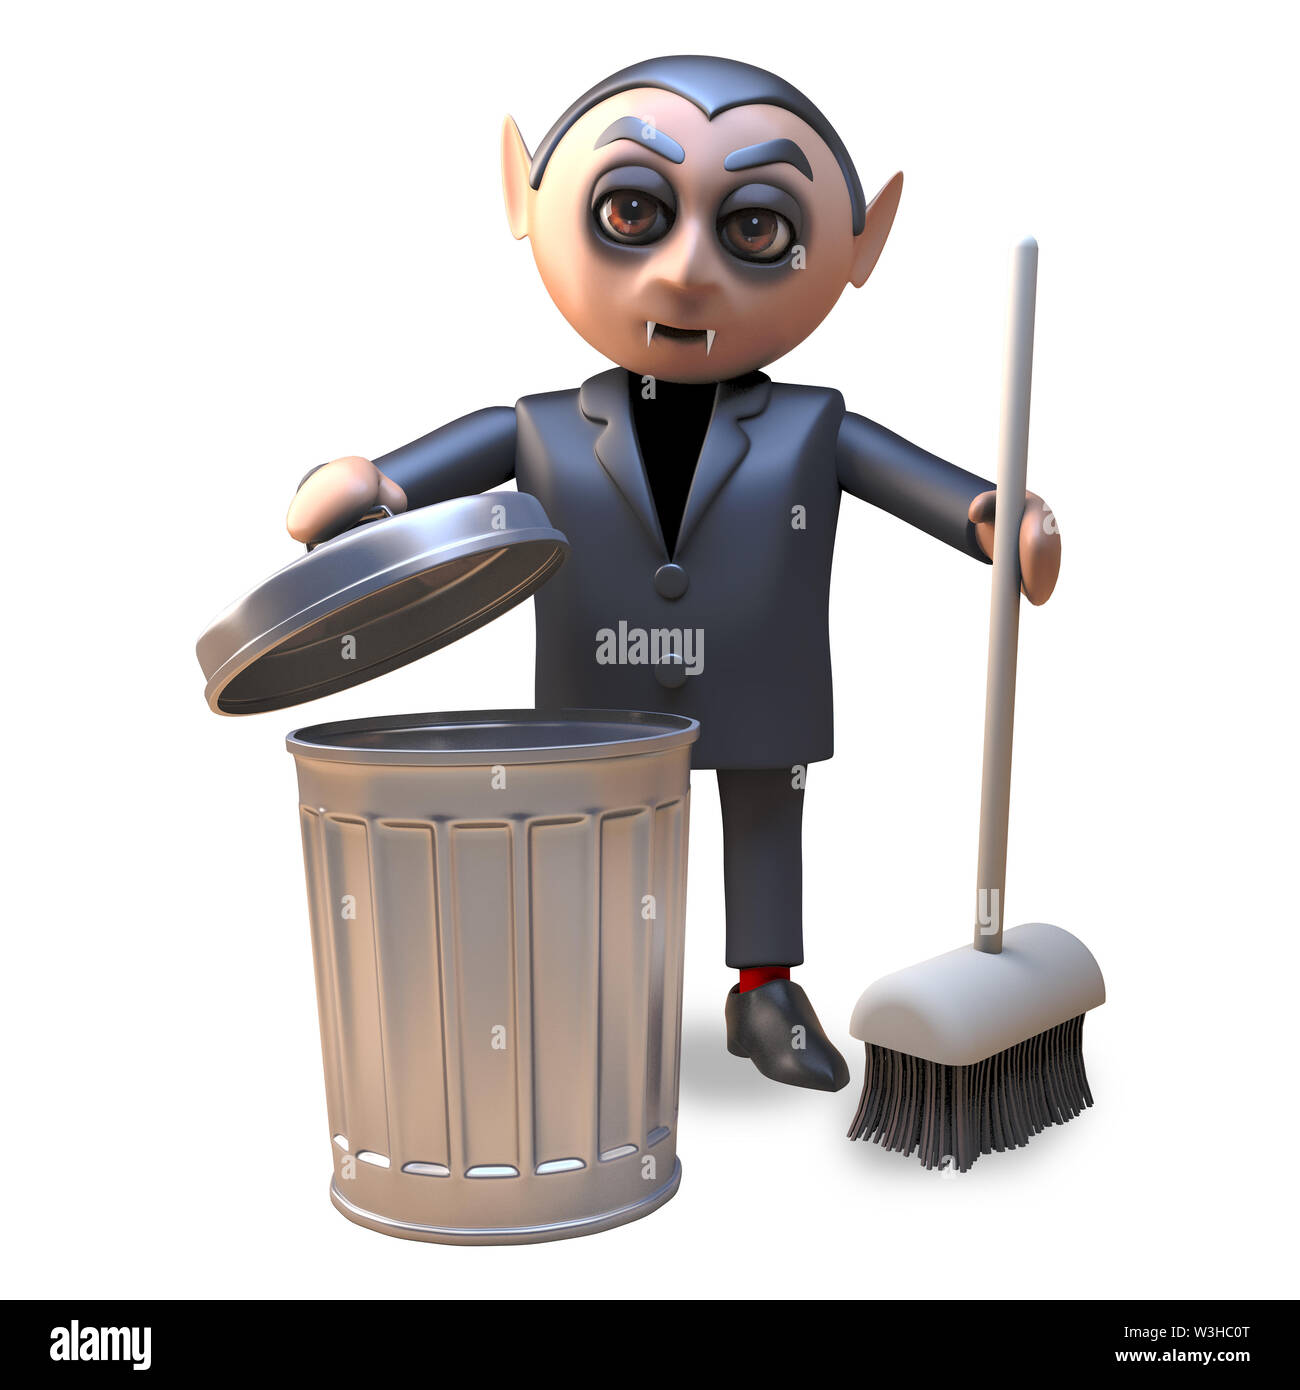 Cartoon 3d Halloween vampire dracula cleaning up with a broom and trash can, 3d illustration render - Stock Image